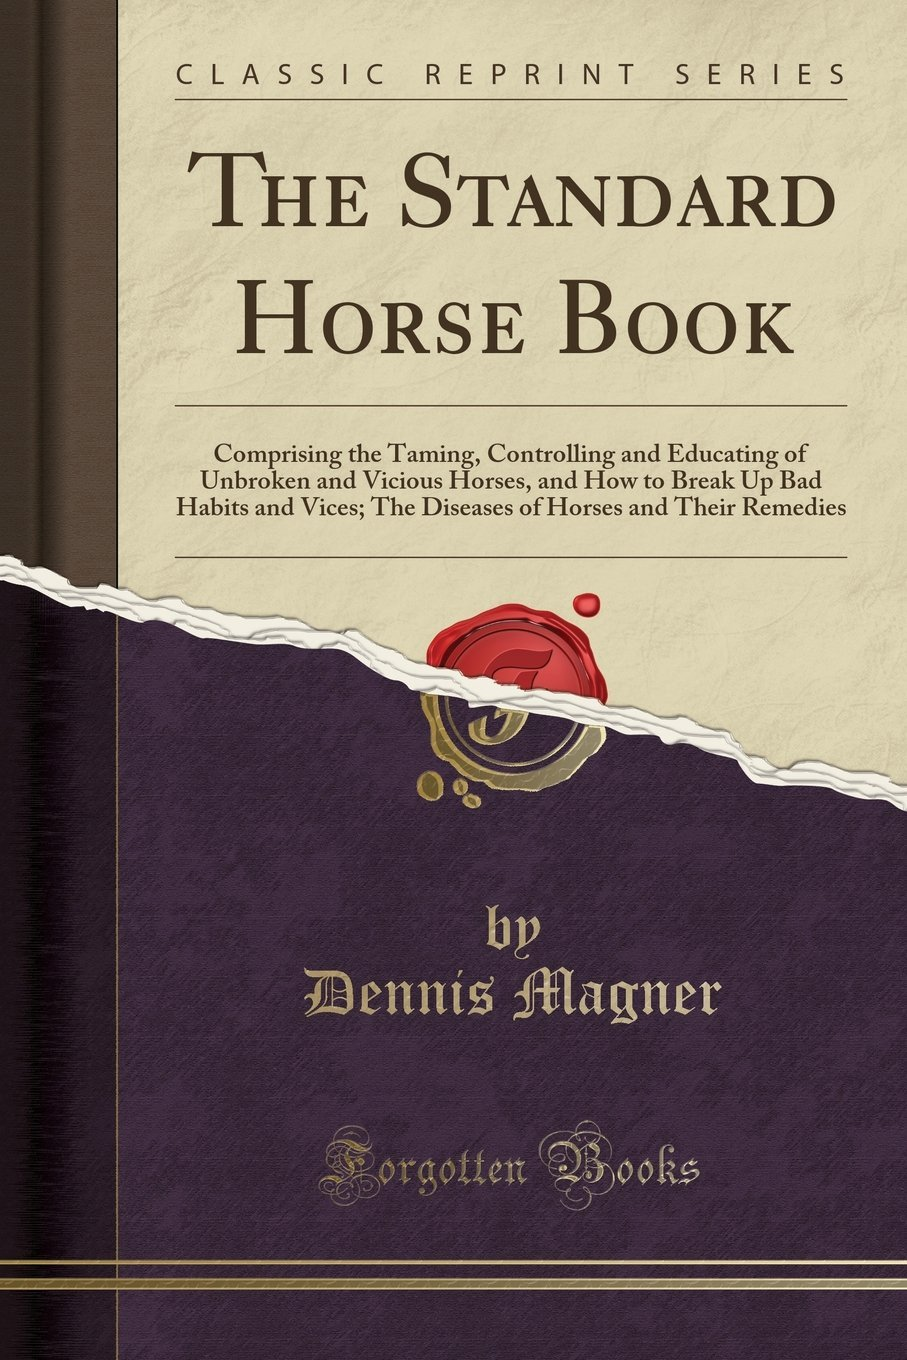 Read Online The Standard Horse Book: Comprising the Taming, Controlling and Educating of Unbroken and Vicious Horses, and How to Break Up Bad Habits and Vices; ... Horses and Their Remedies (Classic Reprint) pdf